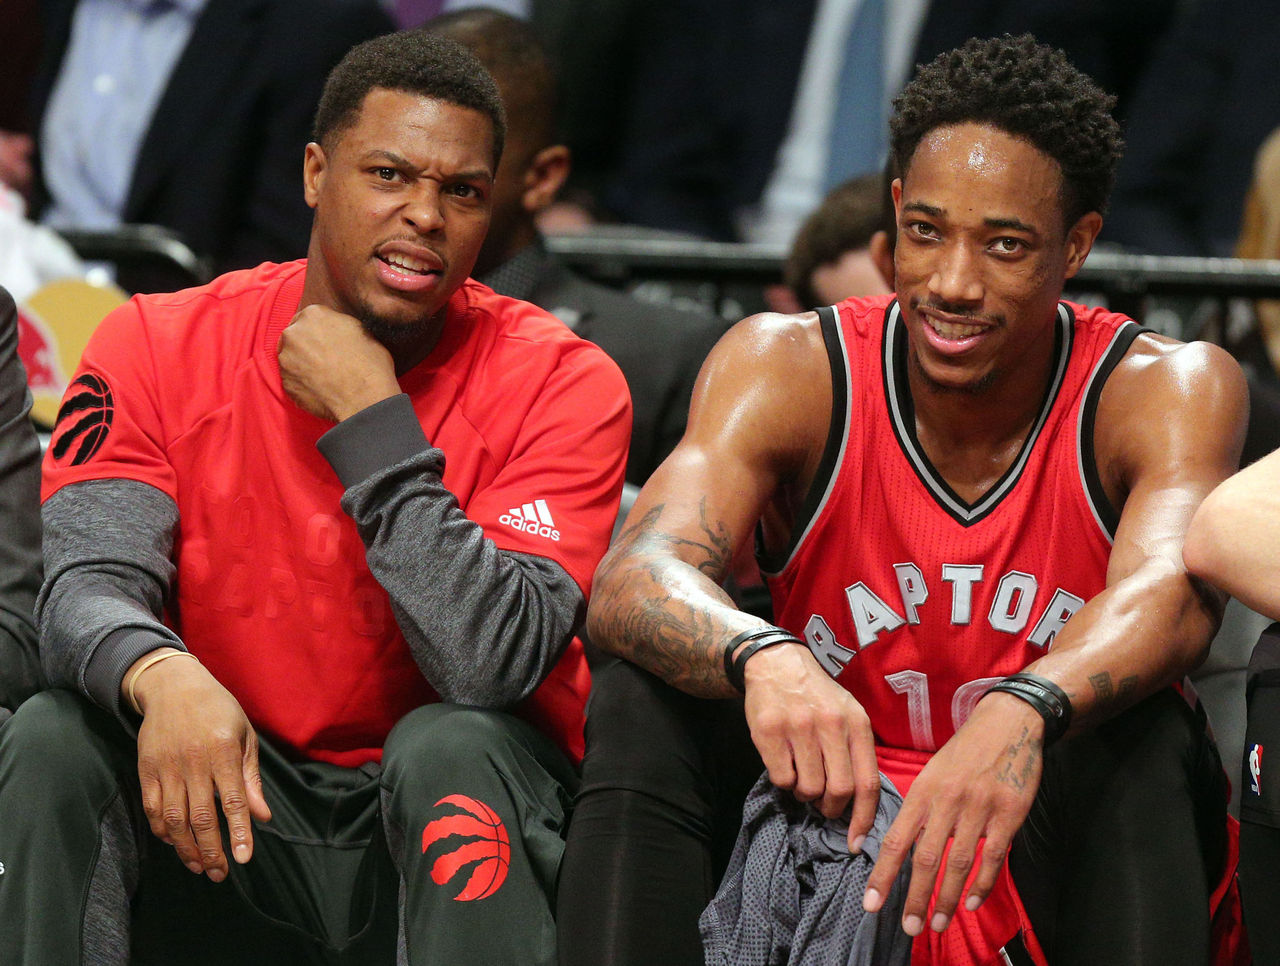 Cropped_2017-01-18t032724z_1734294888_nocid_rtrmadp_3_nba-toronto-raptors-at-brooklyn-nets